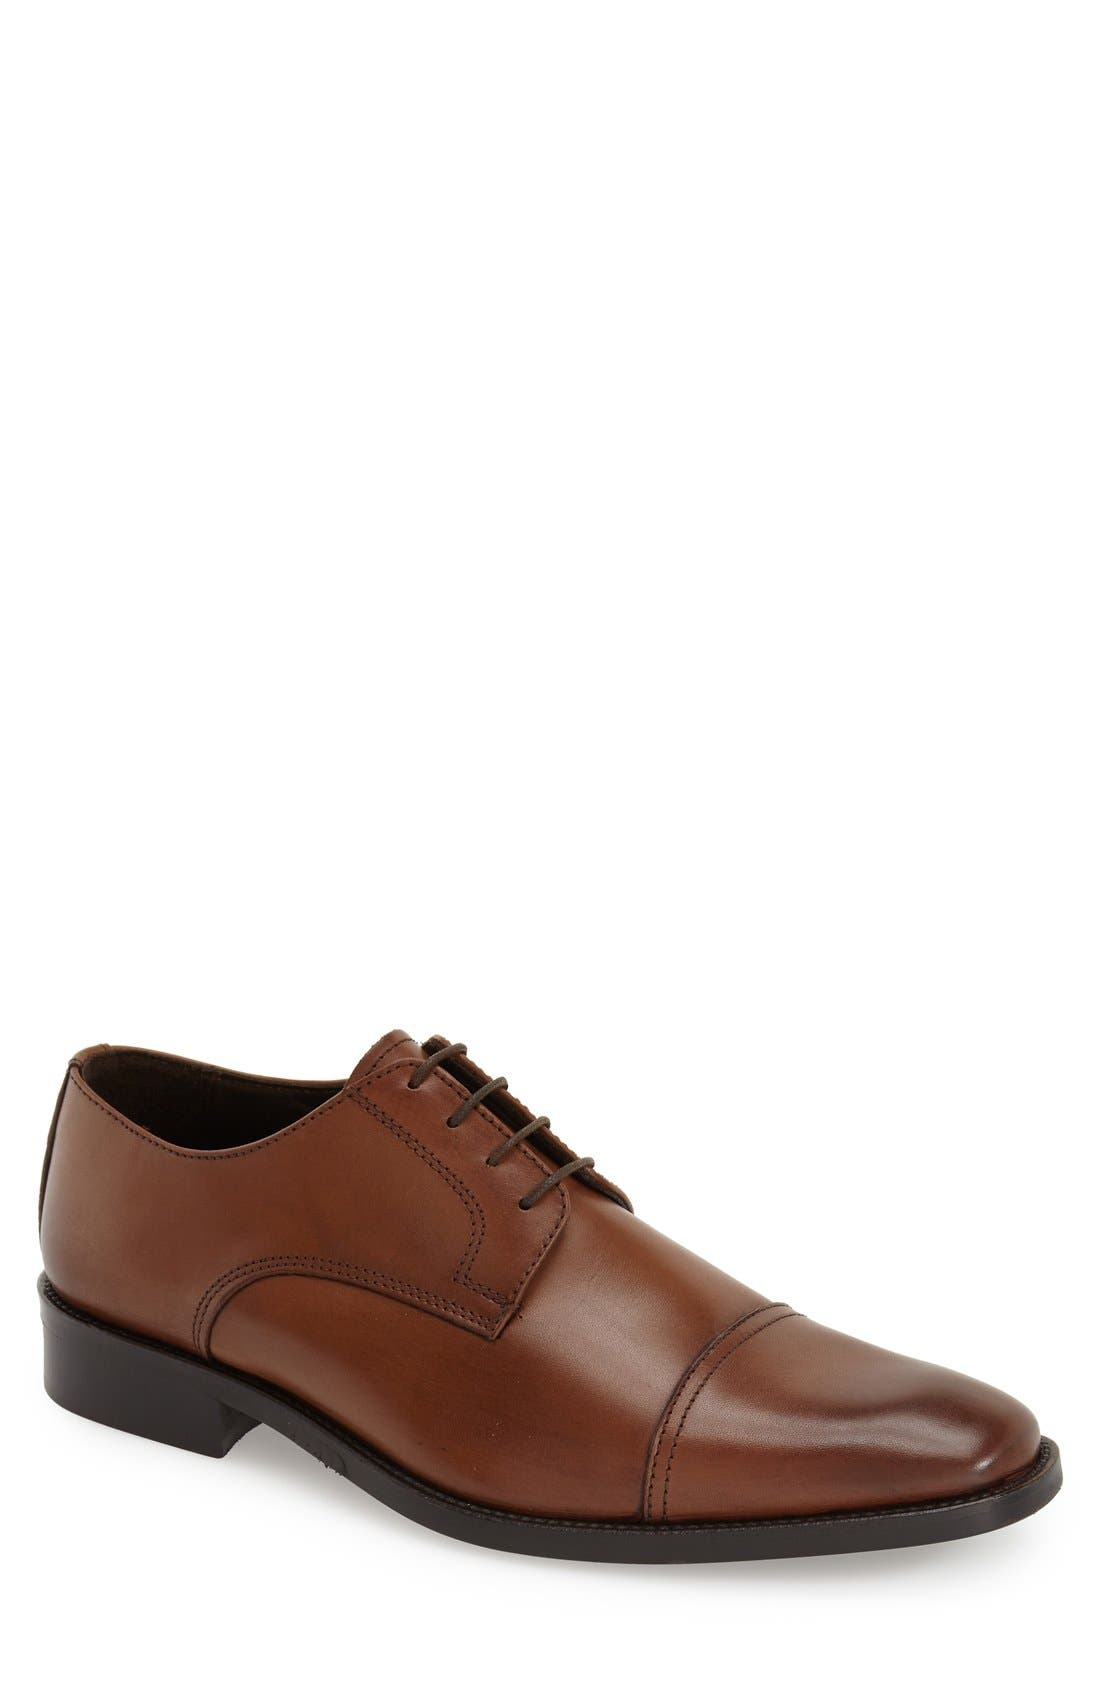 Main Image - To Boot New York 'Maxwell' Cap Toe Derby (Men)